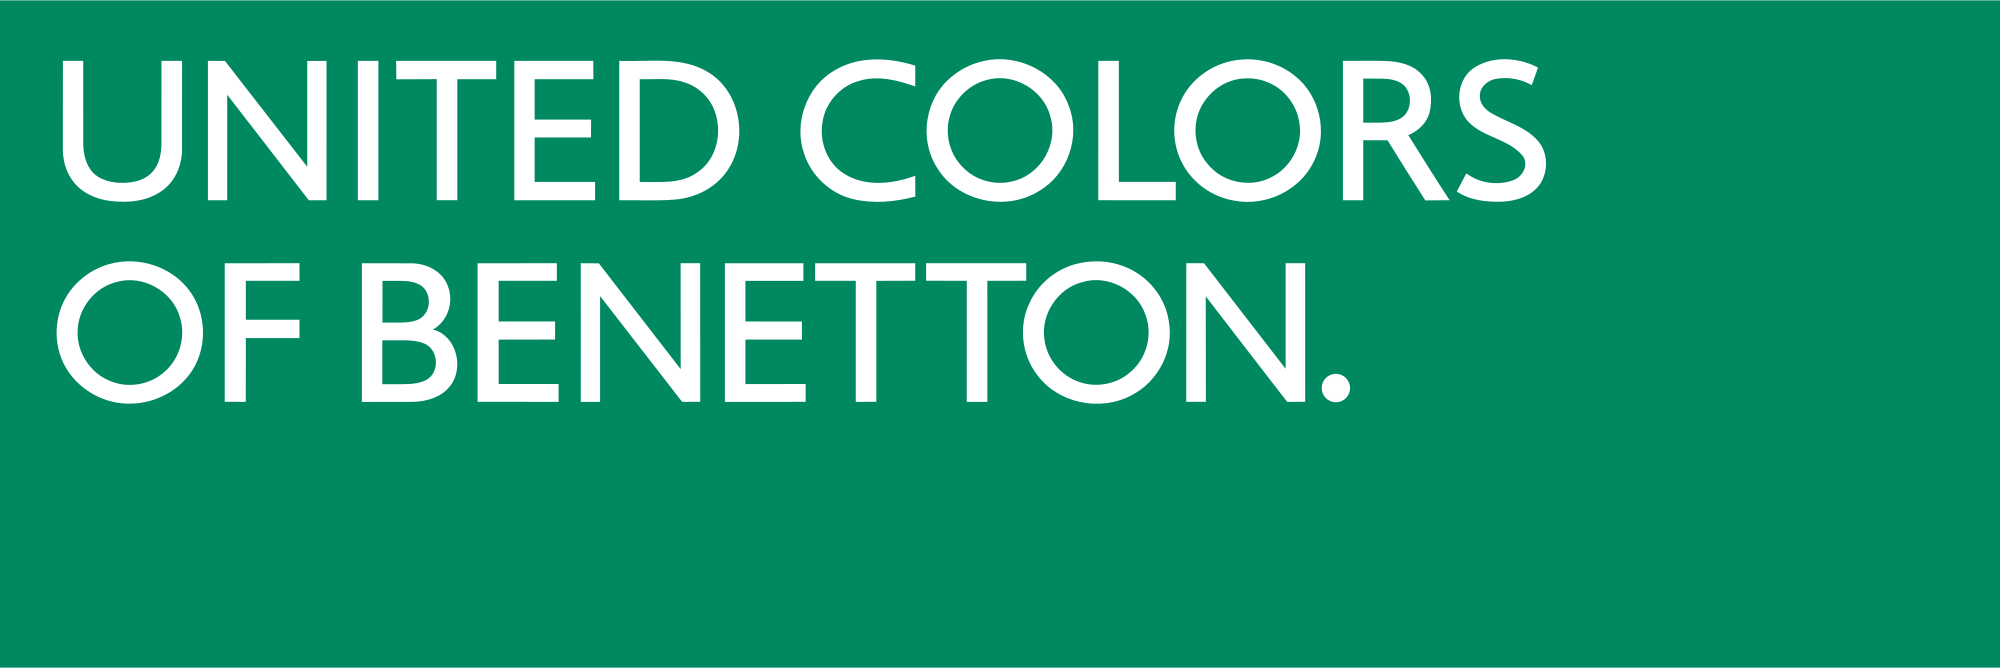 Benetton_Group.png